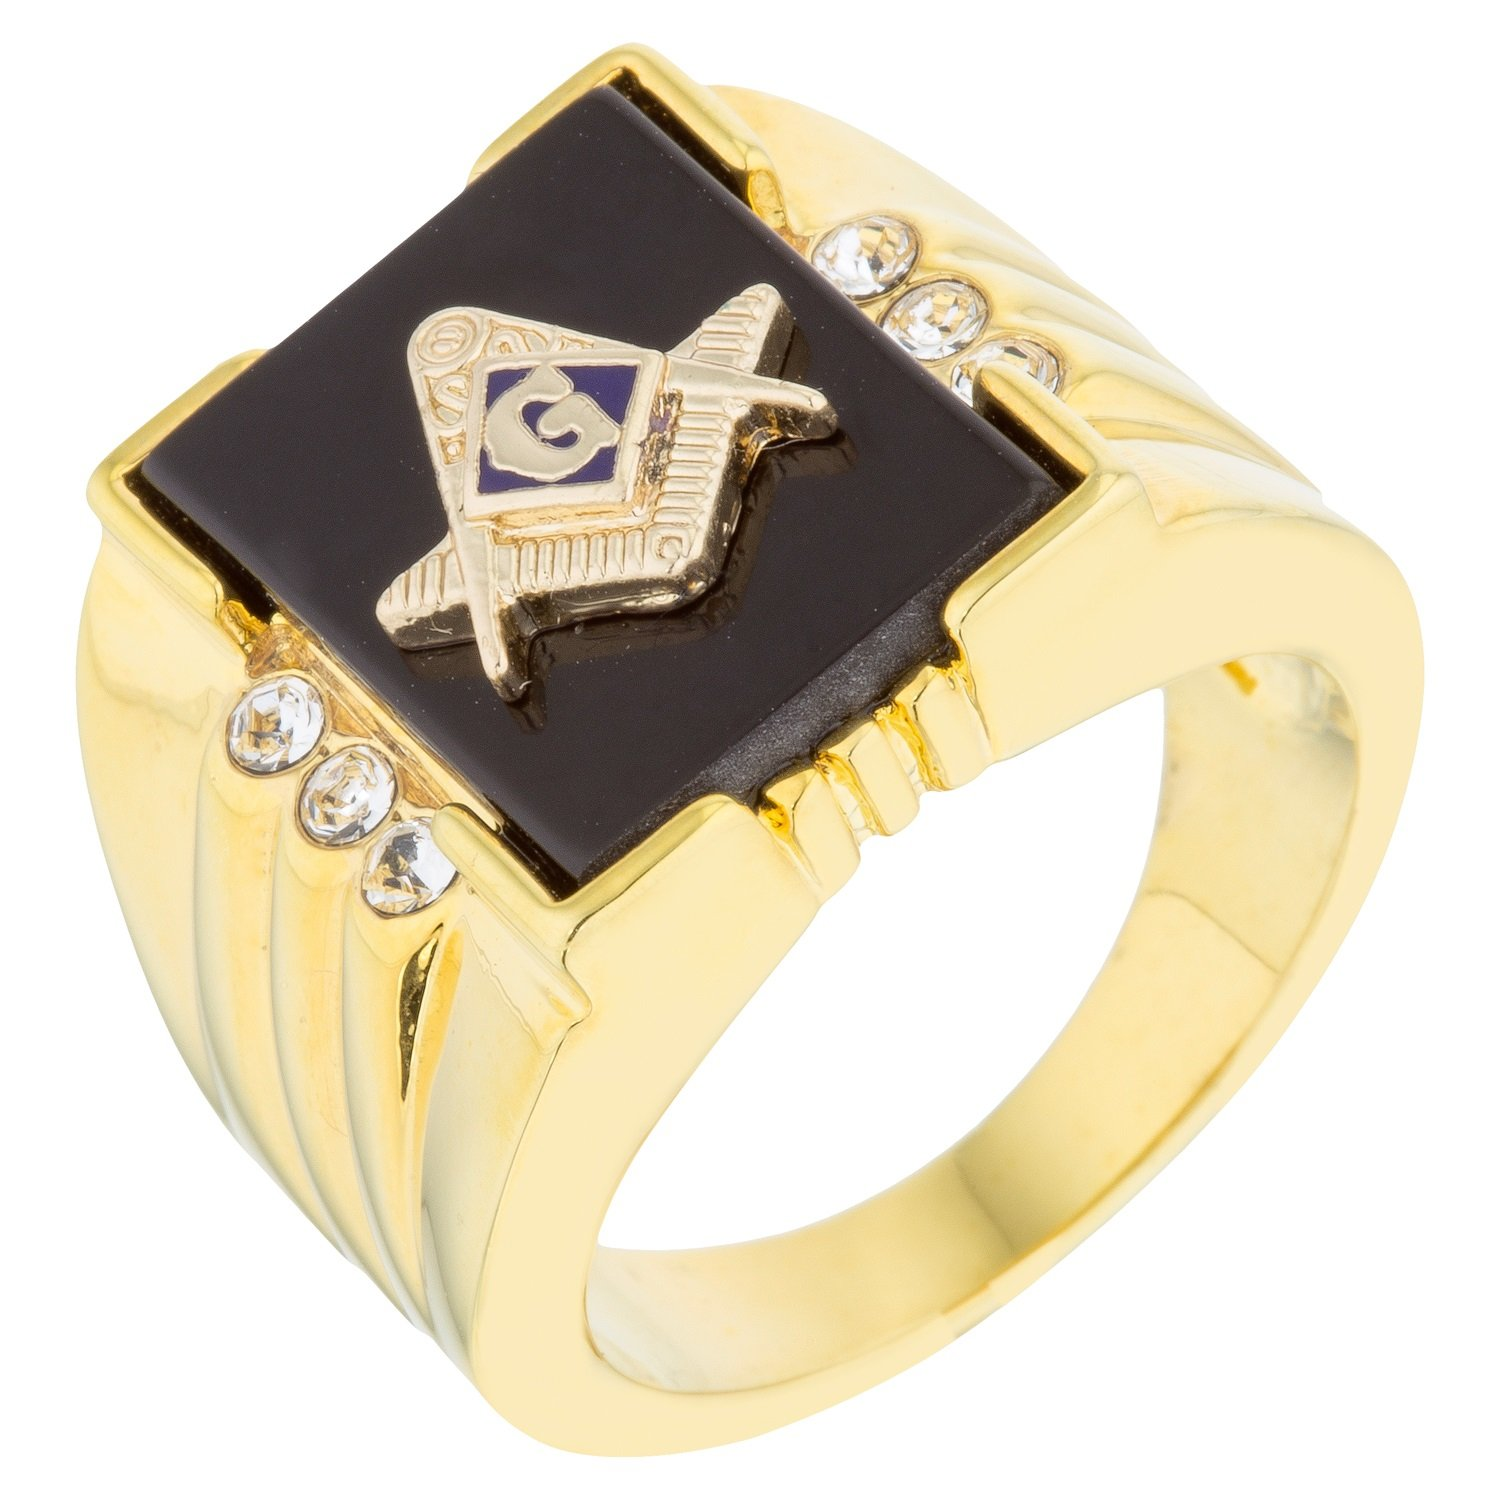 18k Gold Plated Ring with Masonic Symbol with Onyx Accents with Round Cut Clear Cubic Zirconia Size 10